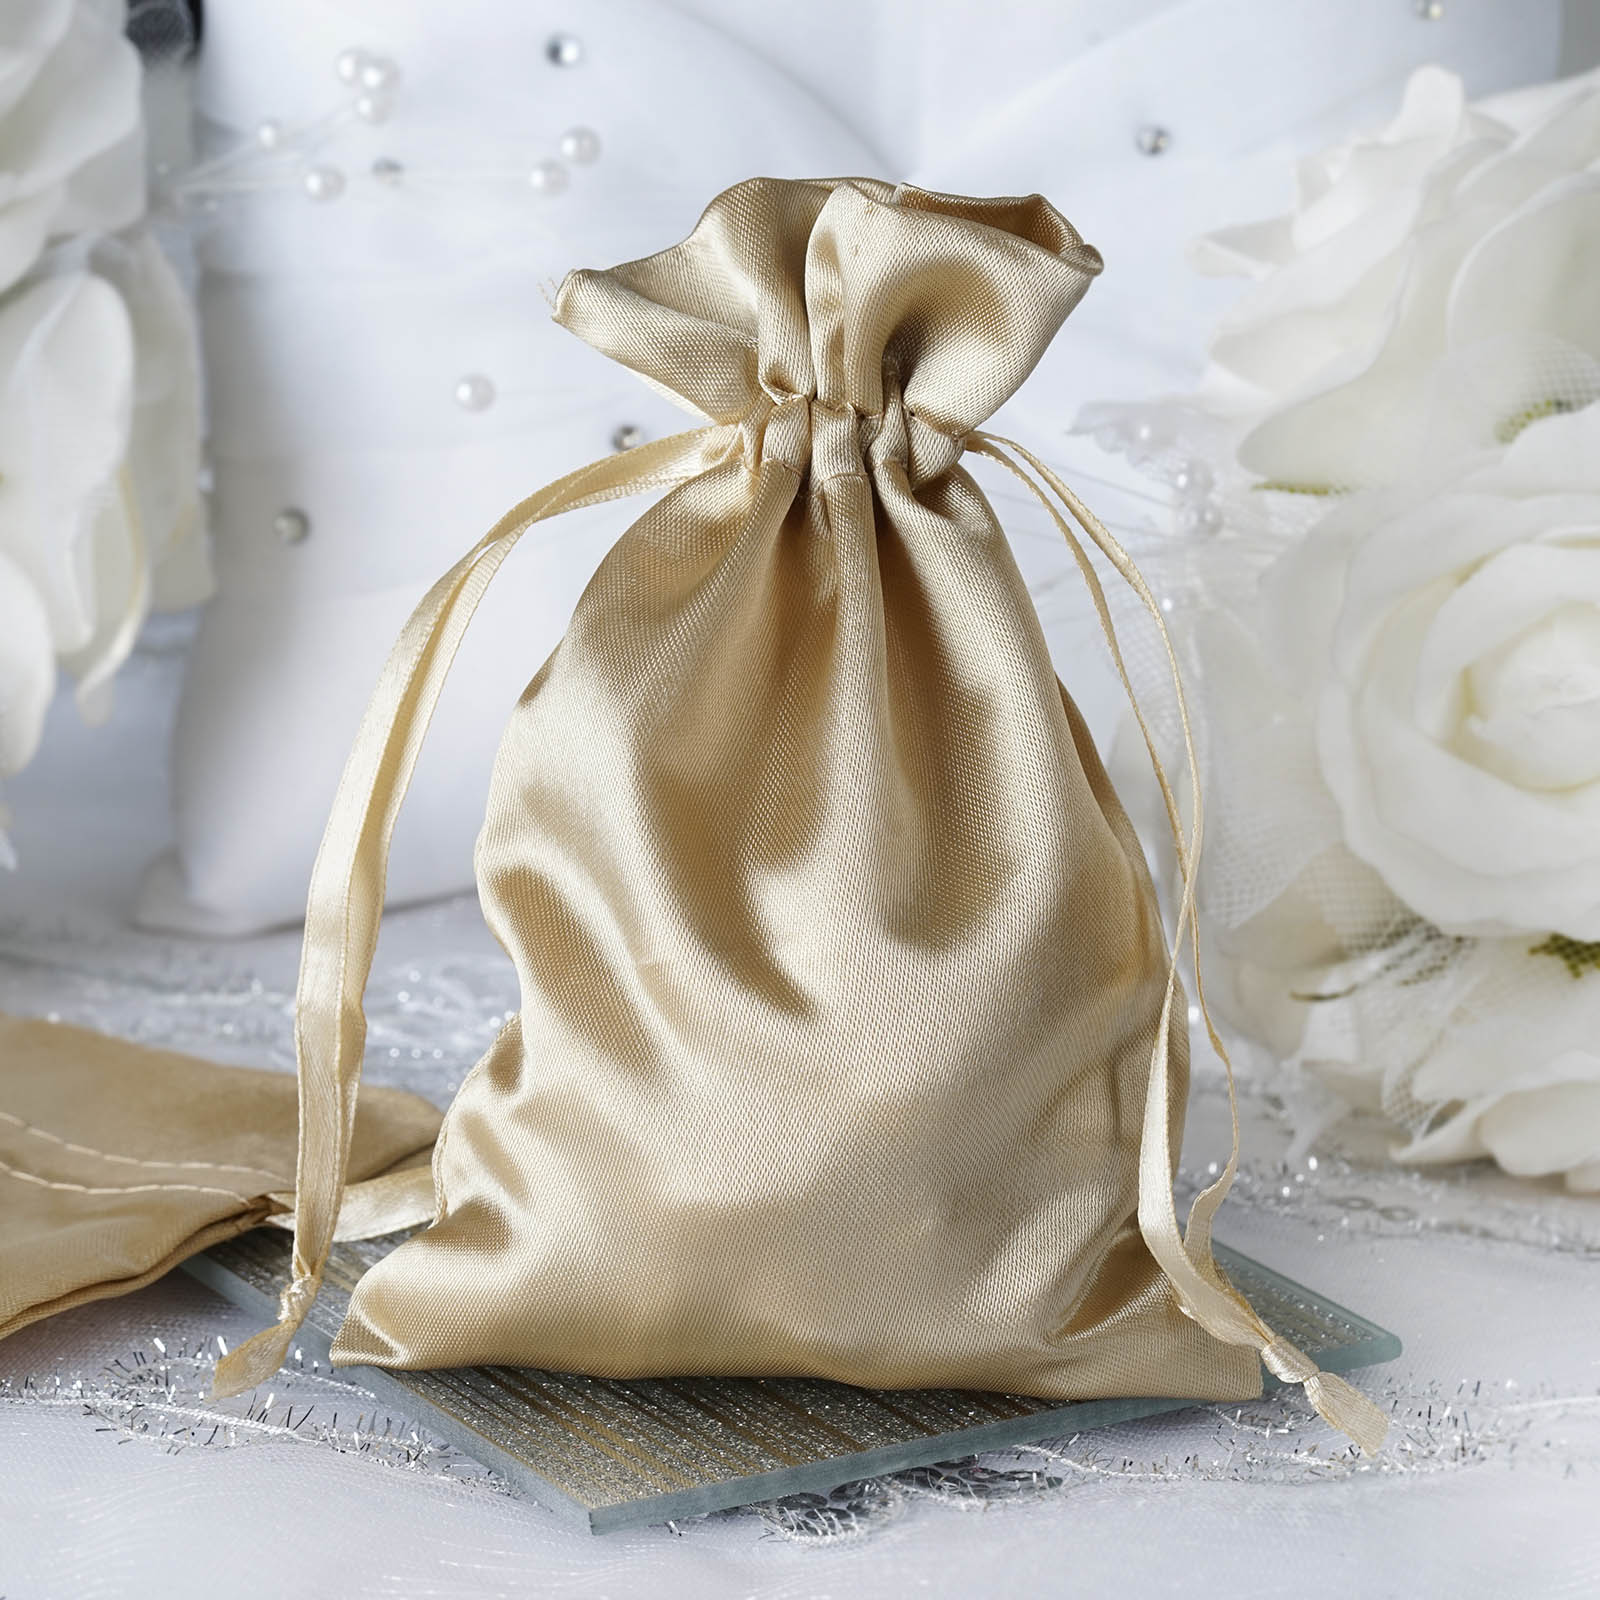 Wedding Favor Bags Wholesale : ... -SATIN-FAVOR-BAGS-Wedding-Party-Reception-Gift-Favors-Bulk-WHOLESALE